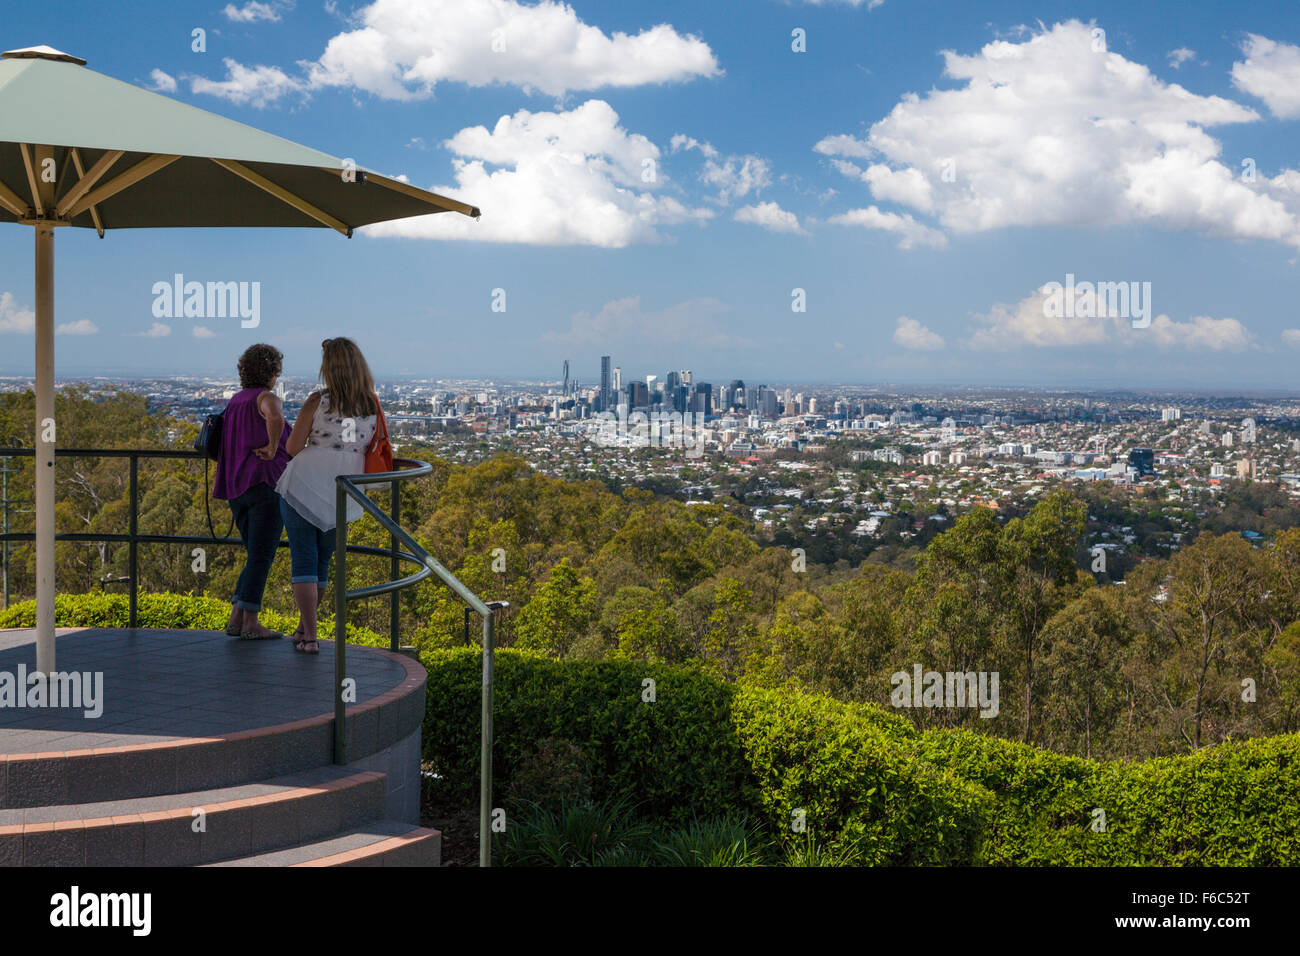 View of Mount Coot-tha Lookout over Brisbane, Queensland, Australia - Stock Image